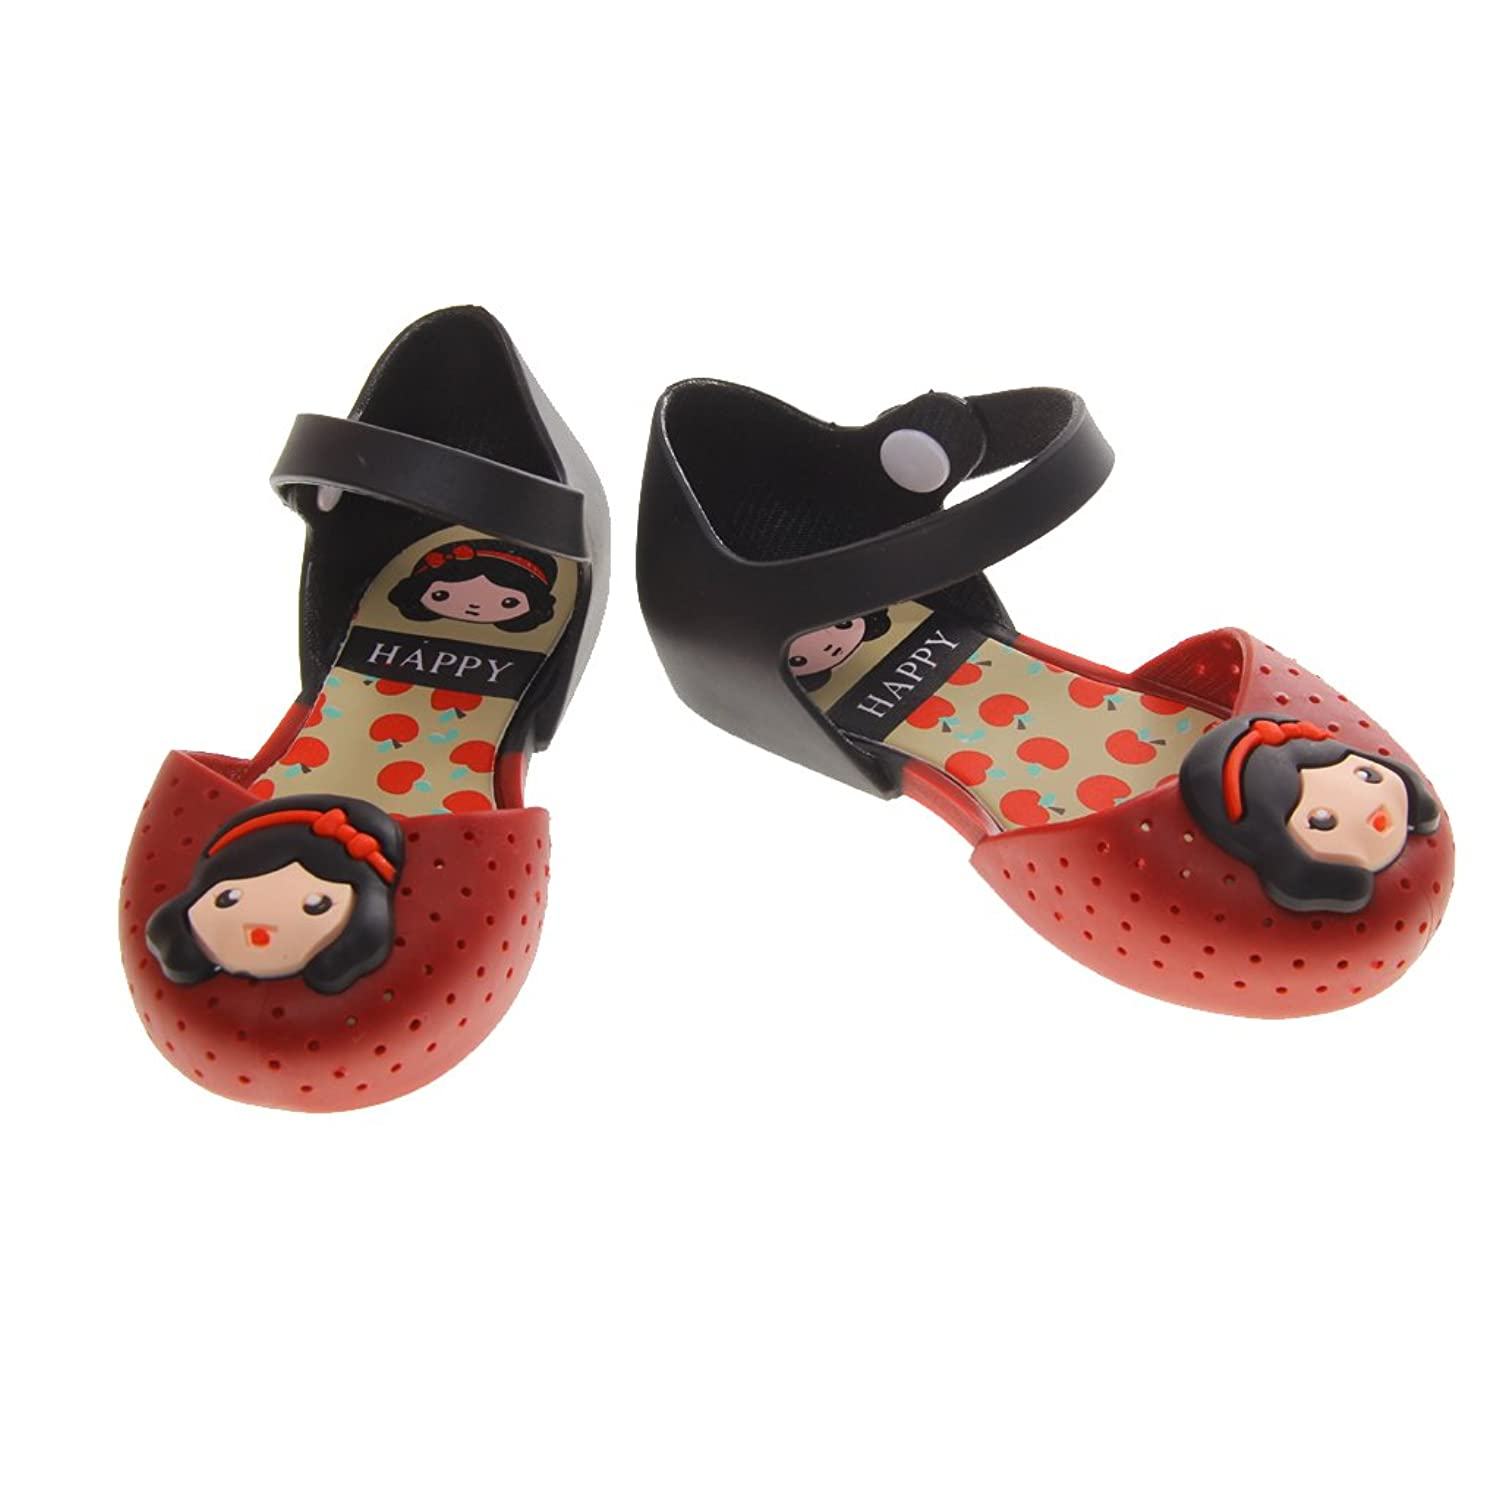 Shoes Girls Jelly Princess Sandals Image 2